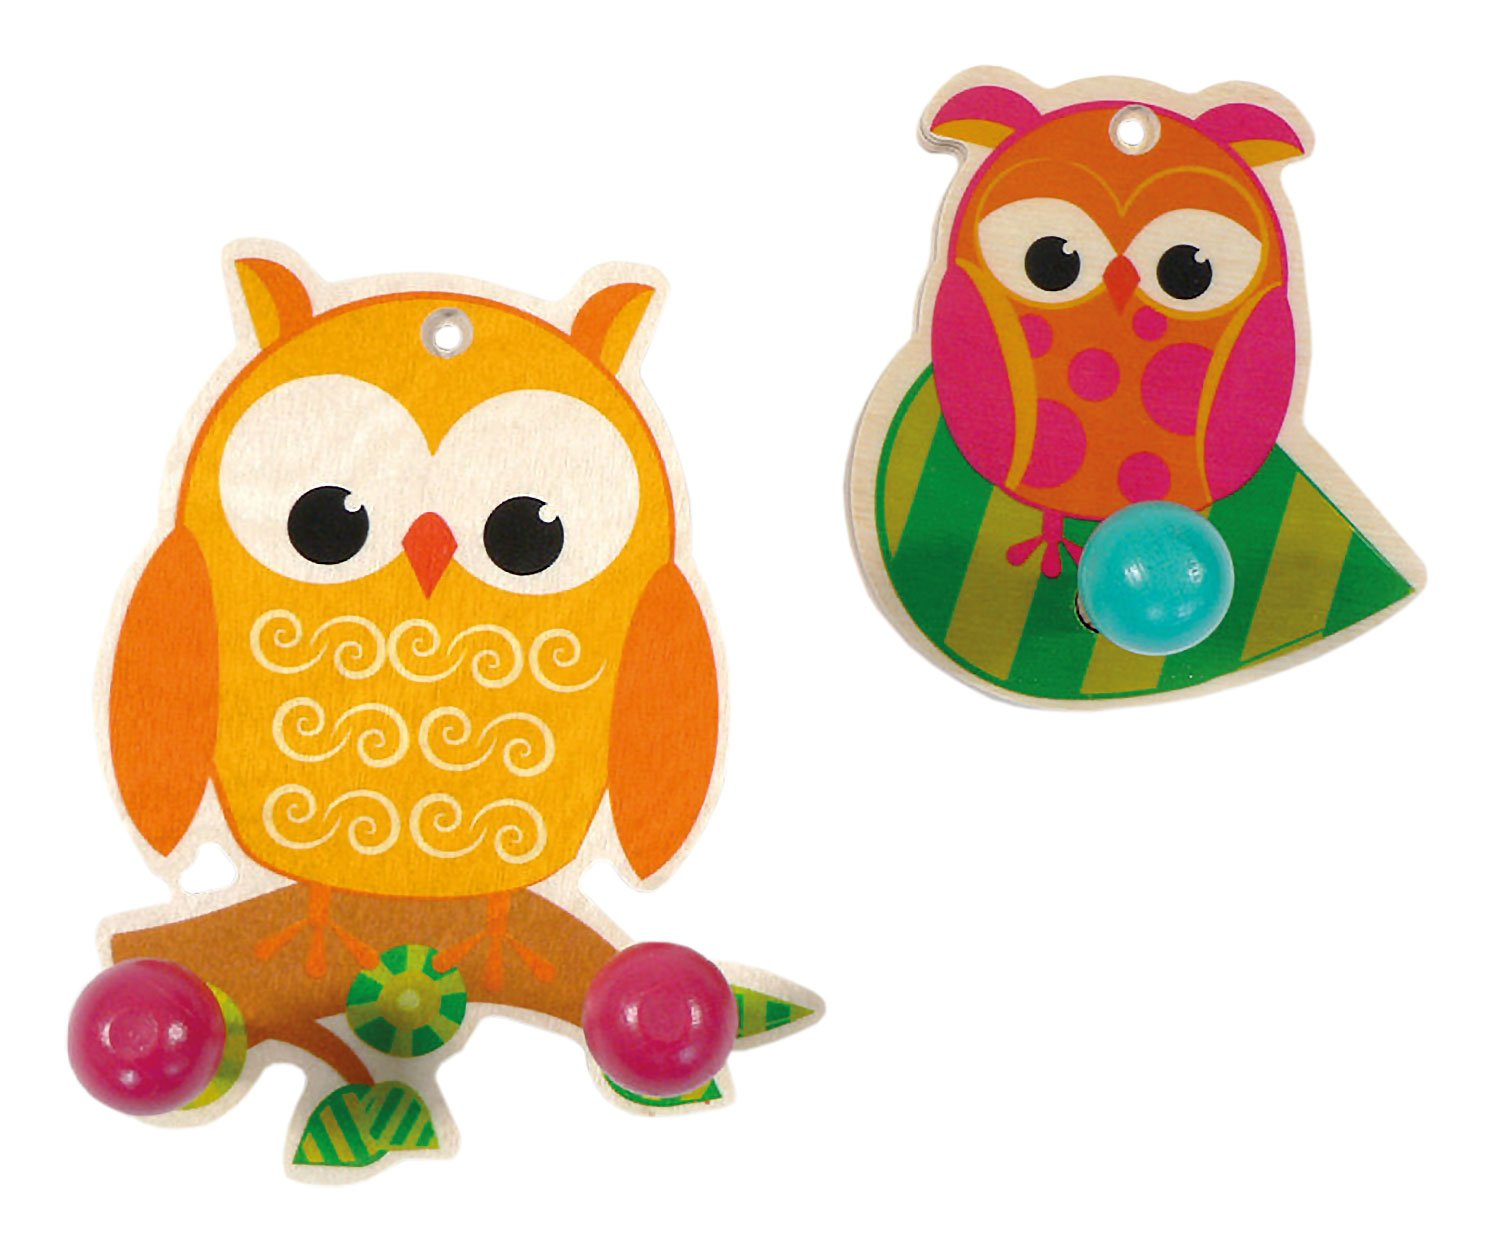 Hess Wooden 2 Owls Ward Robes Set Baby Toy, Small Hess_30315